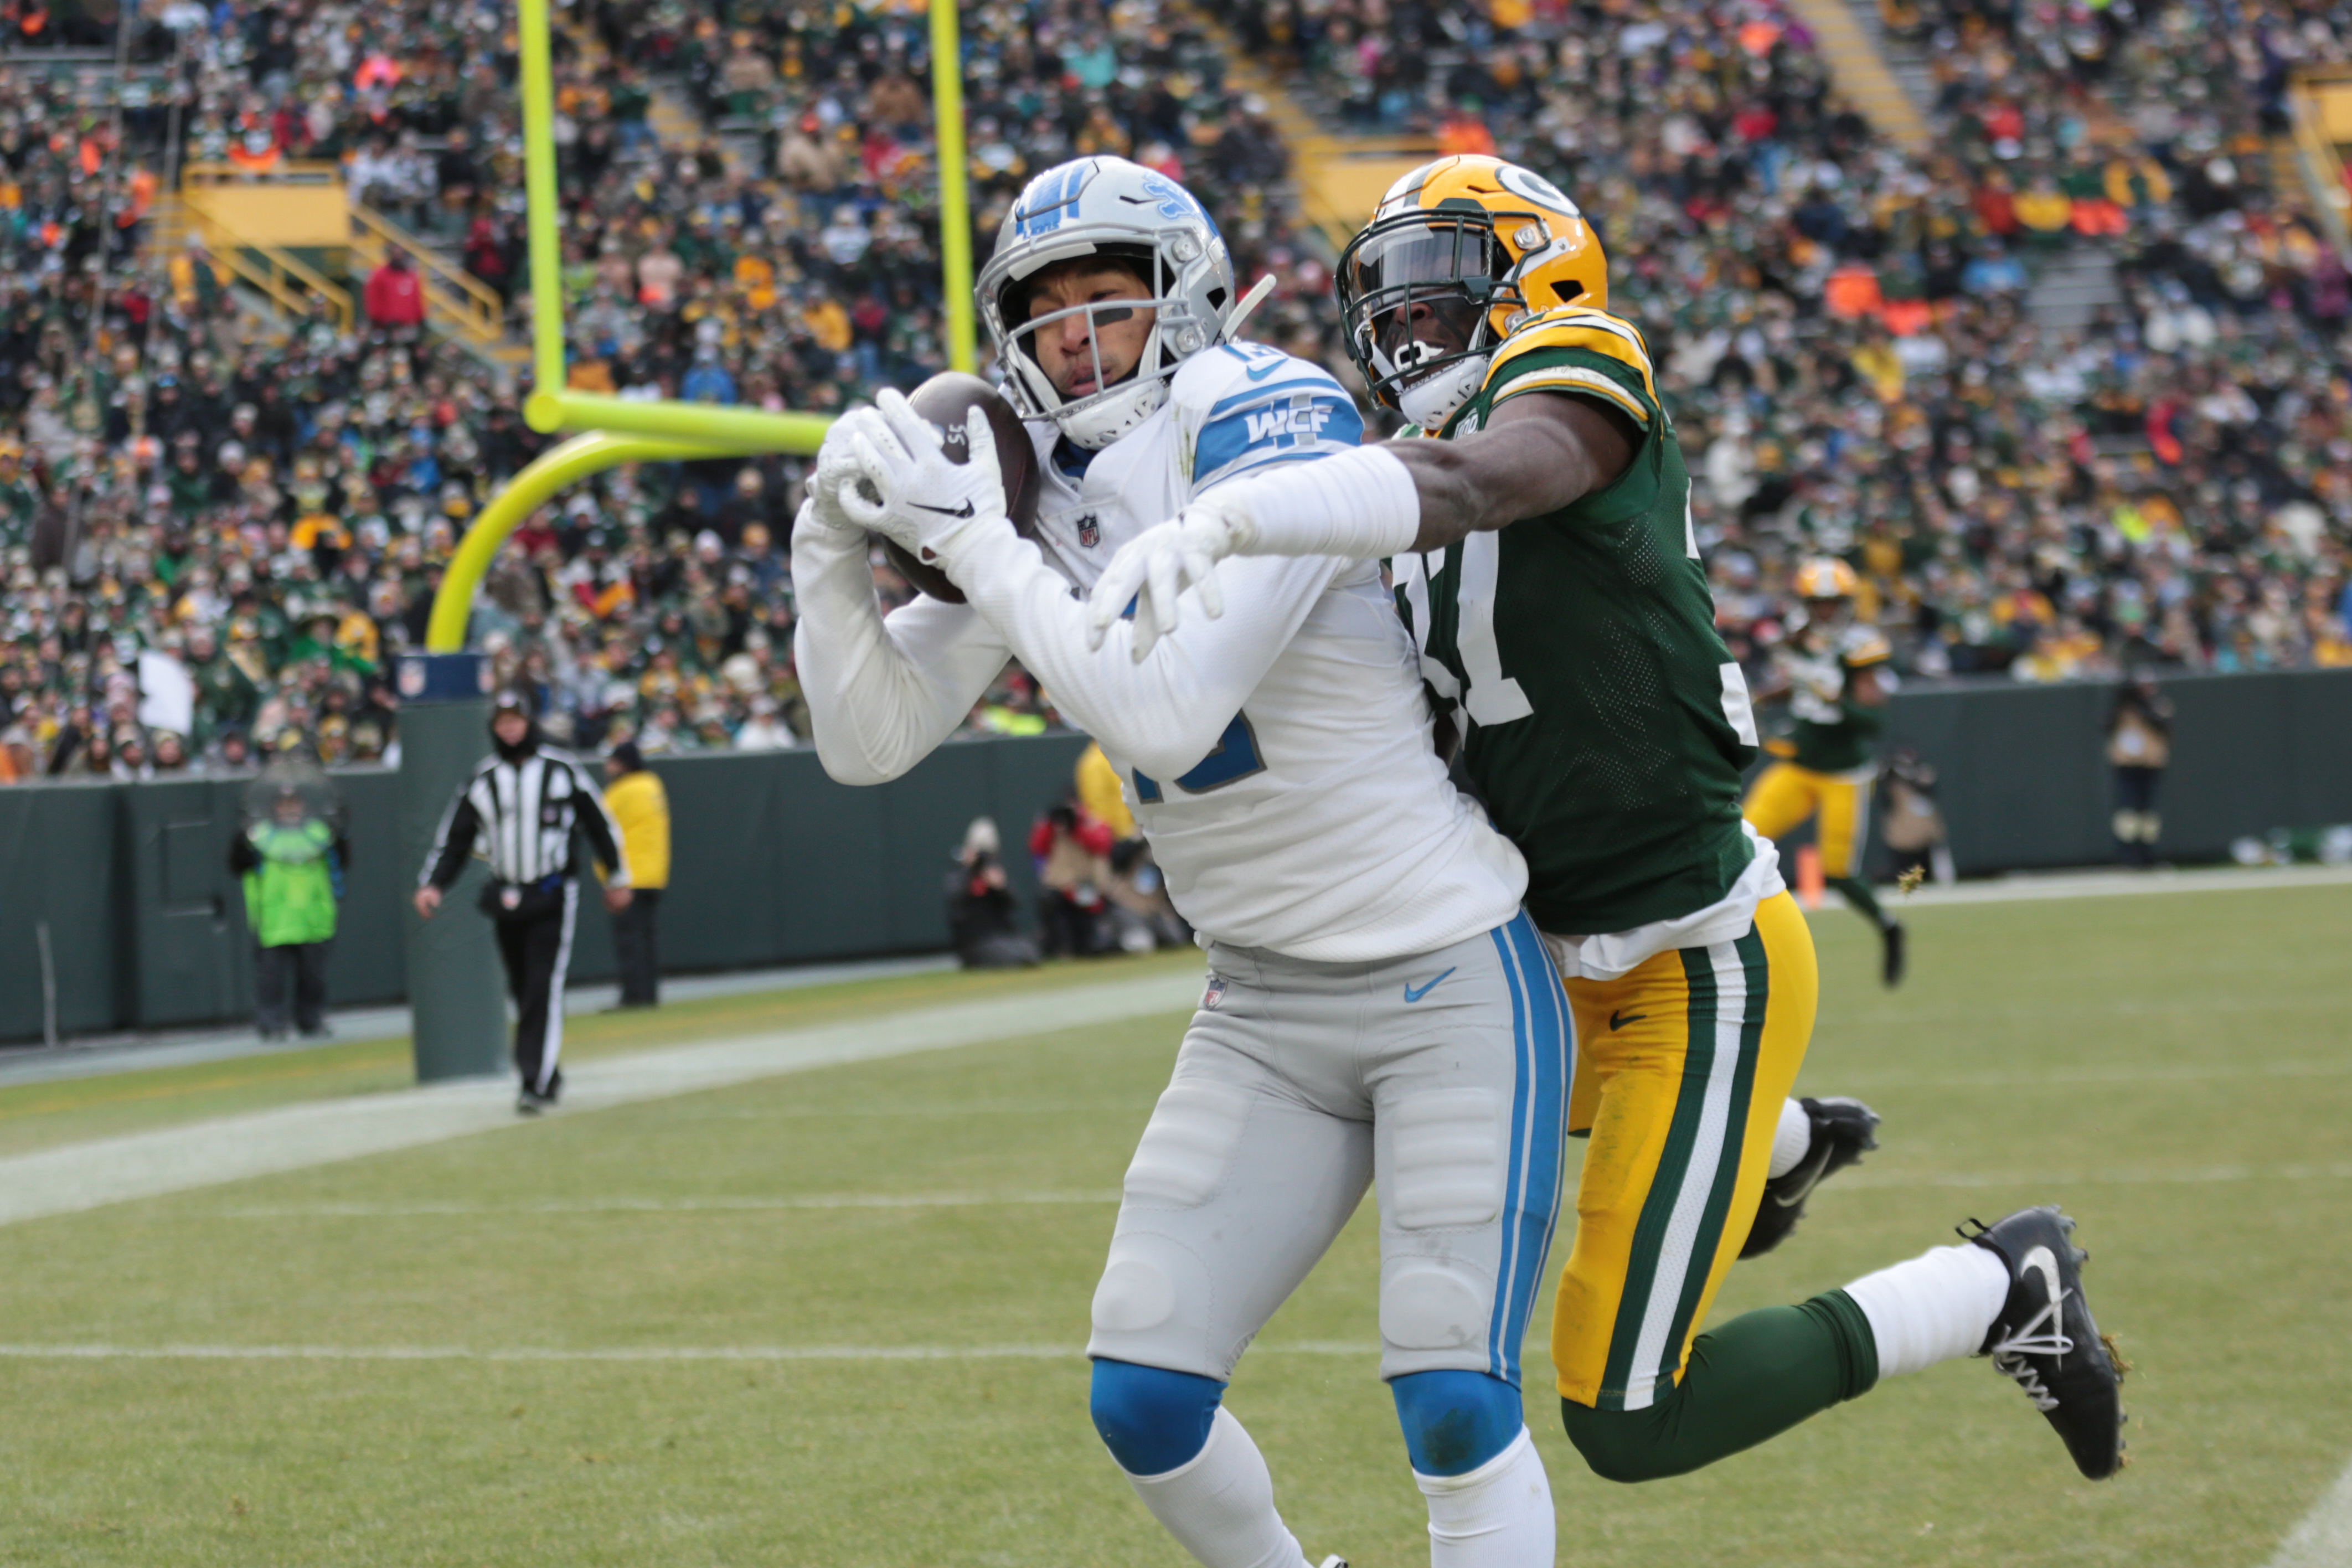 NFL: DEC 30 Lions at Packers